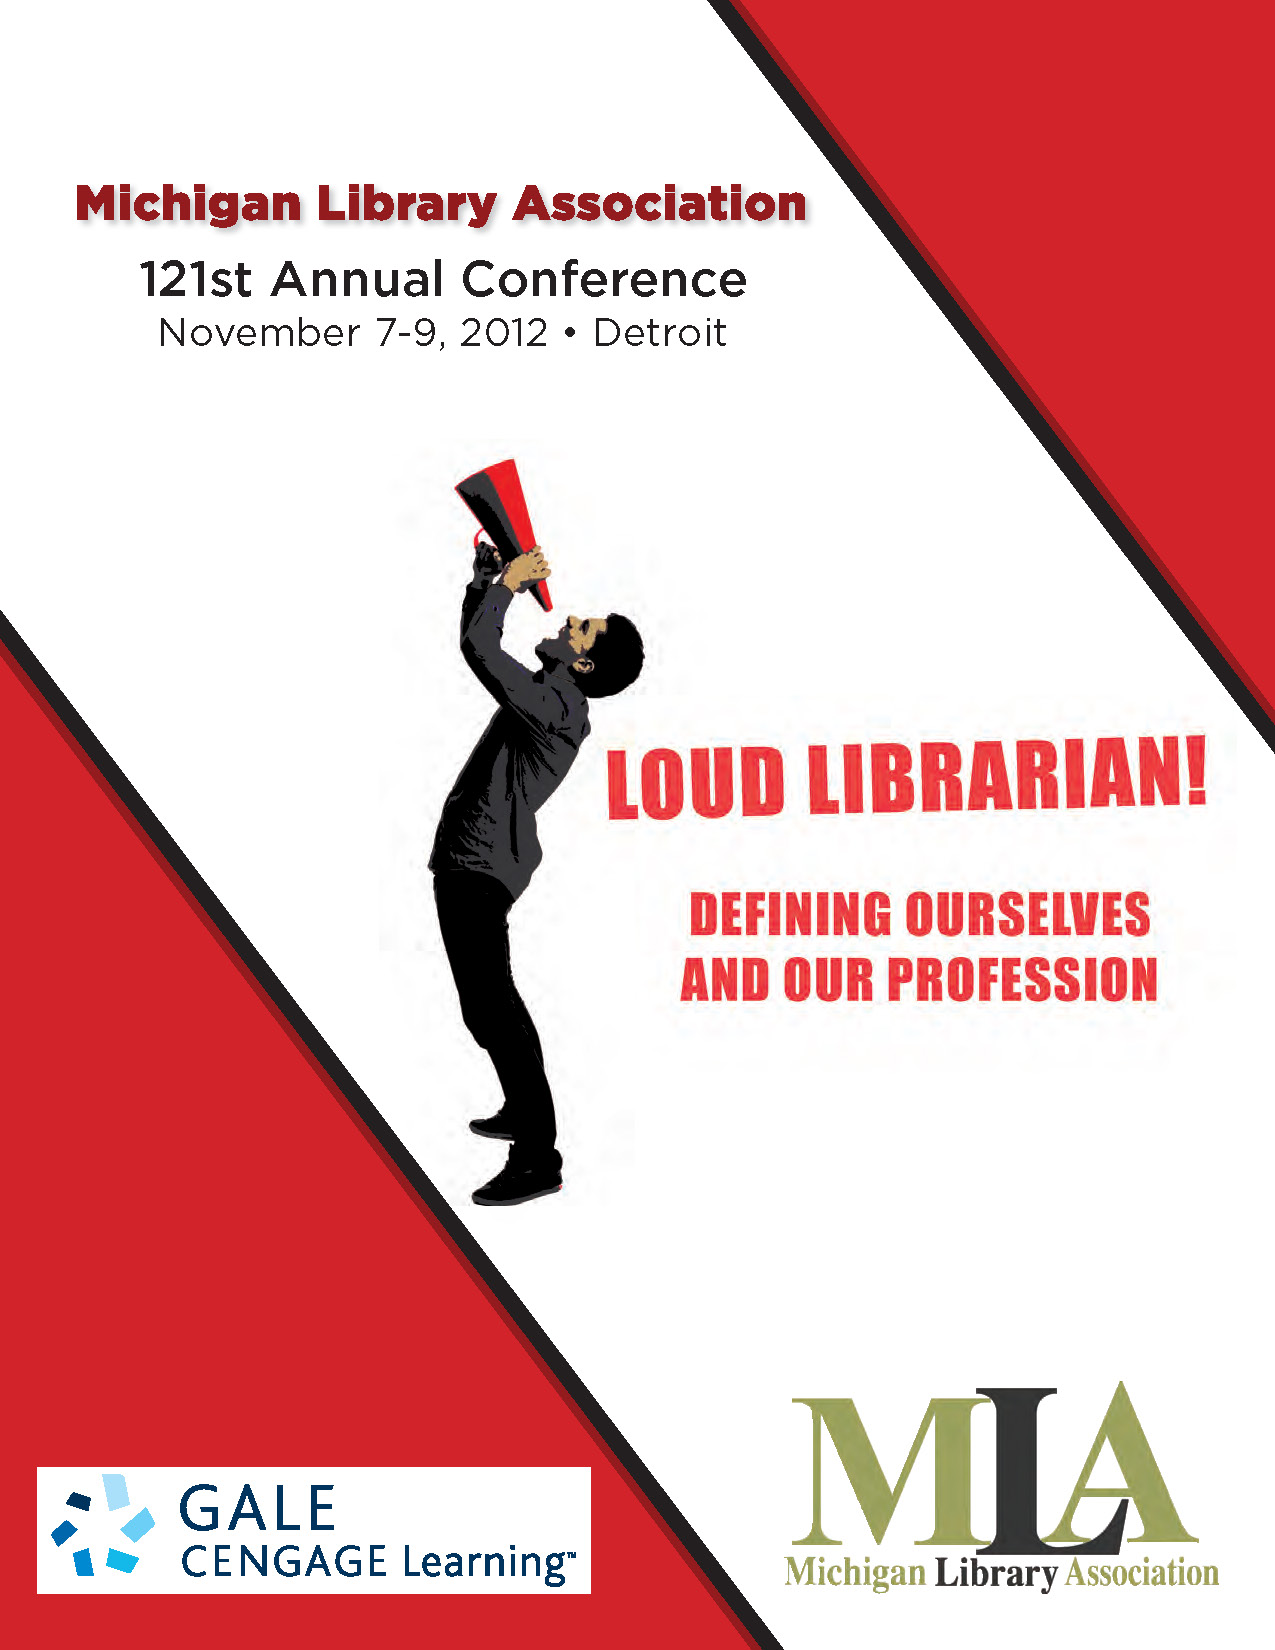 MLA 2012 Program Book Cover image - linked to program book pdf